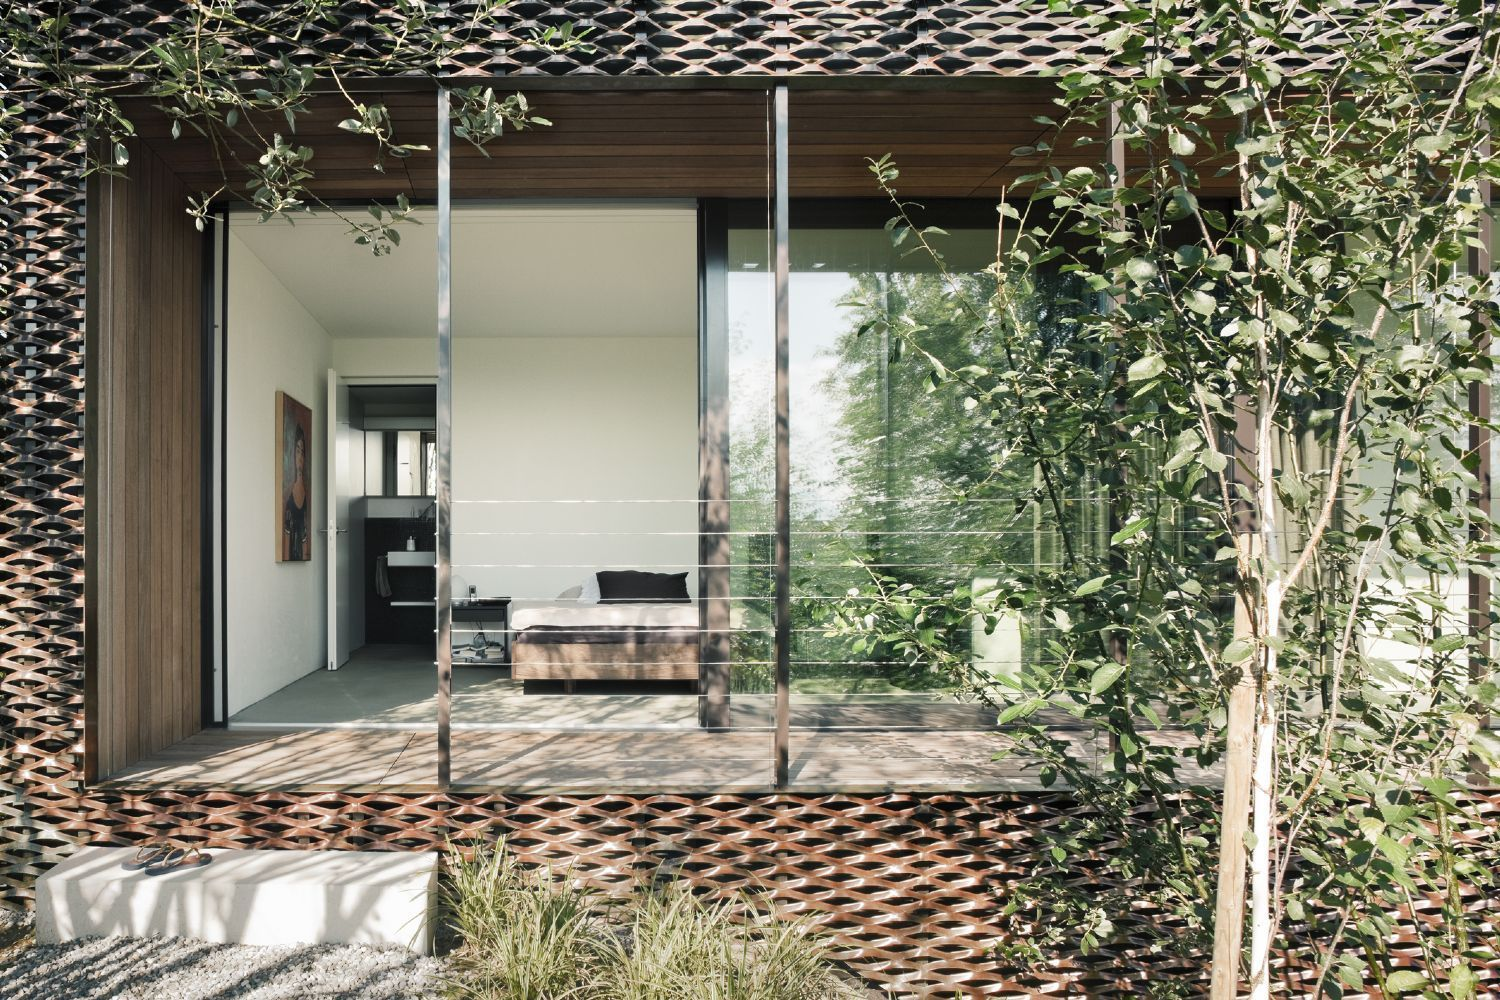 View from outside. a f a s i a: Peter Kunz Architektur